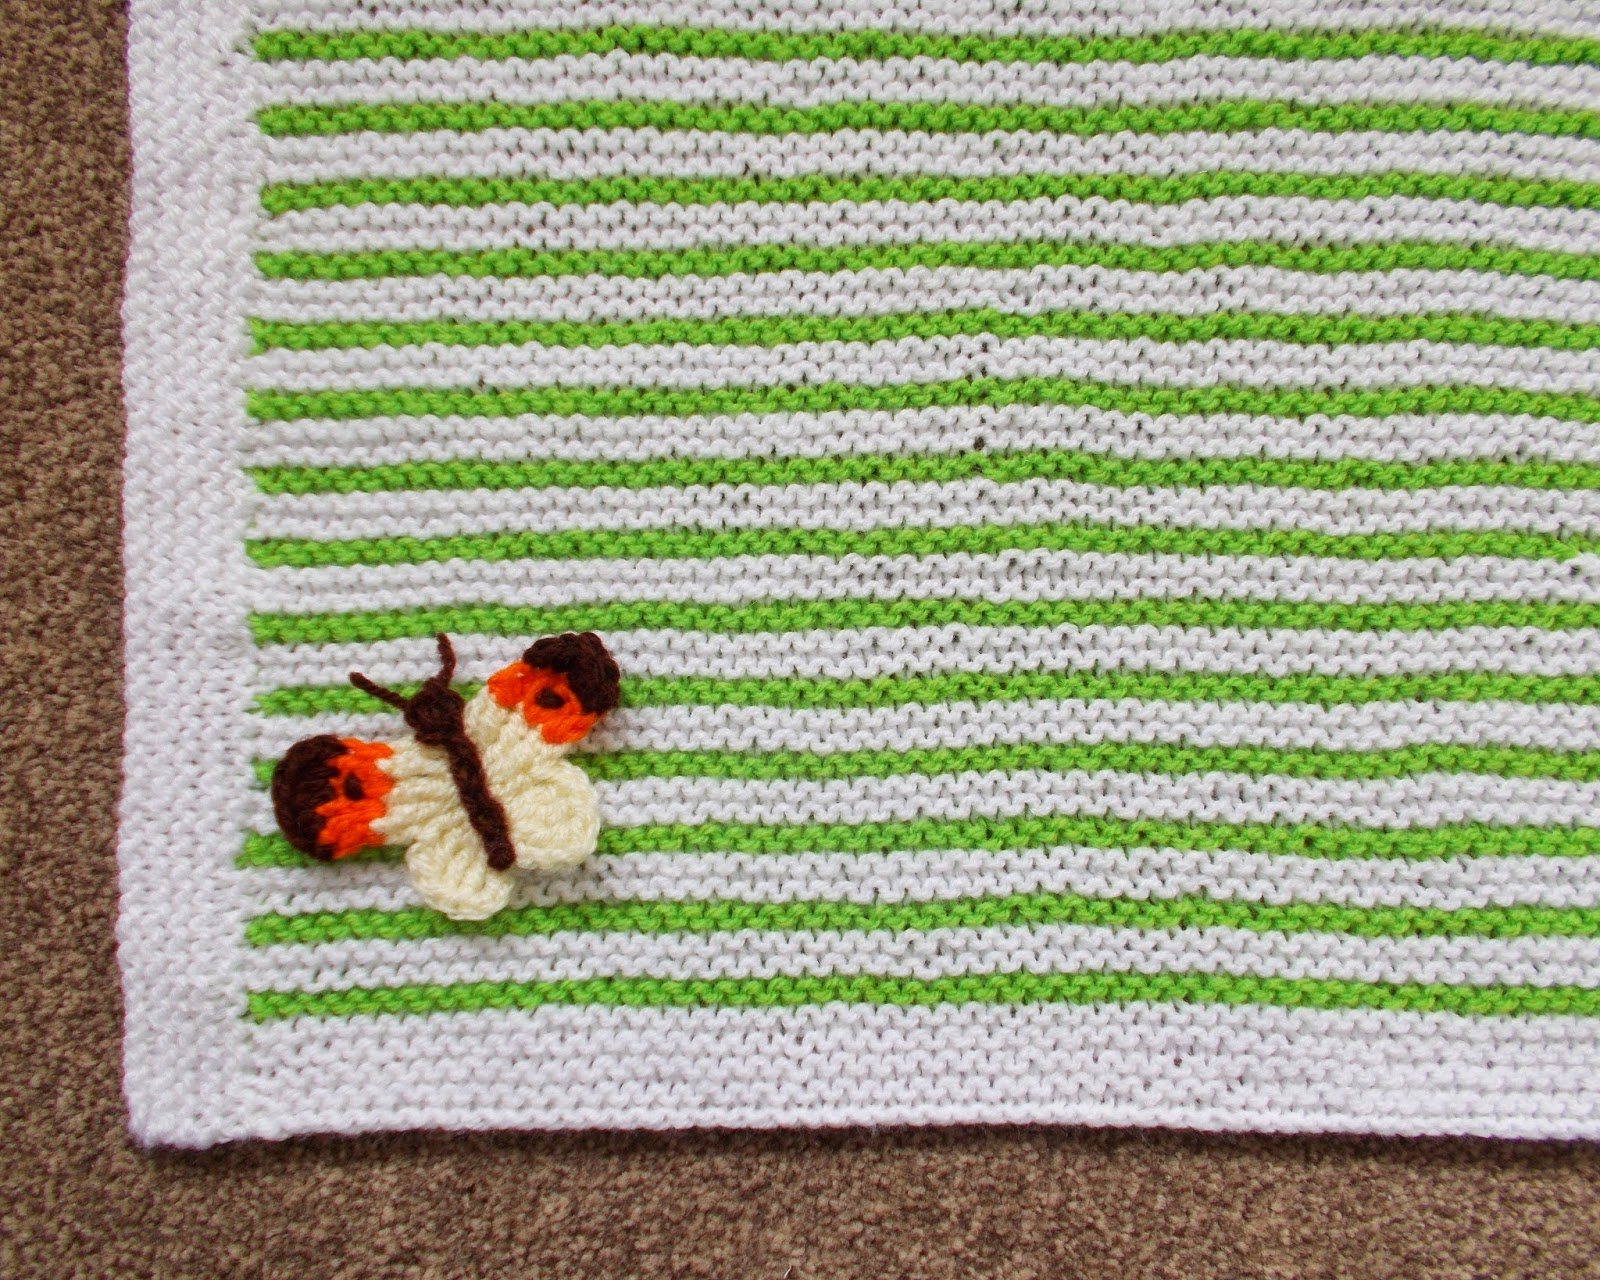 mariannas lazy daisy days: Easy Garter Stitch Striped Baby Blanket